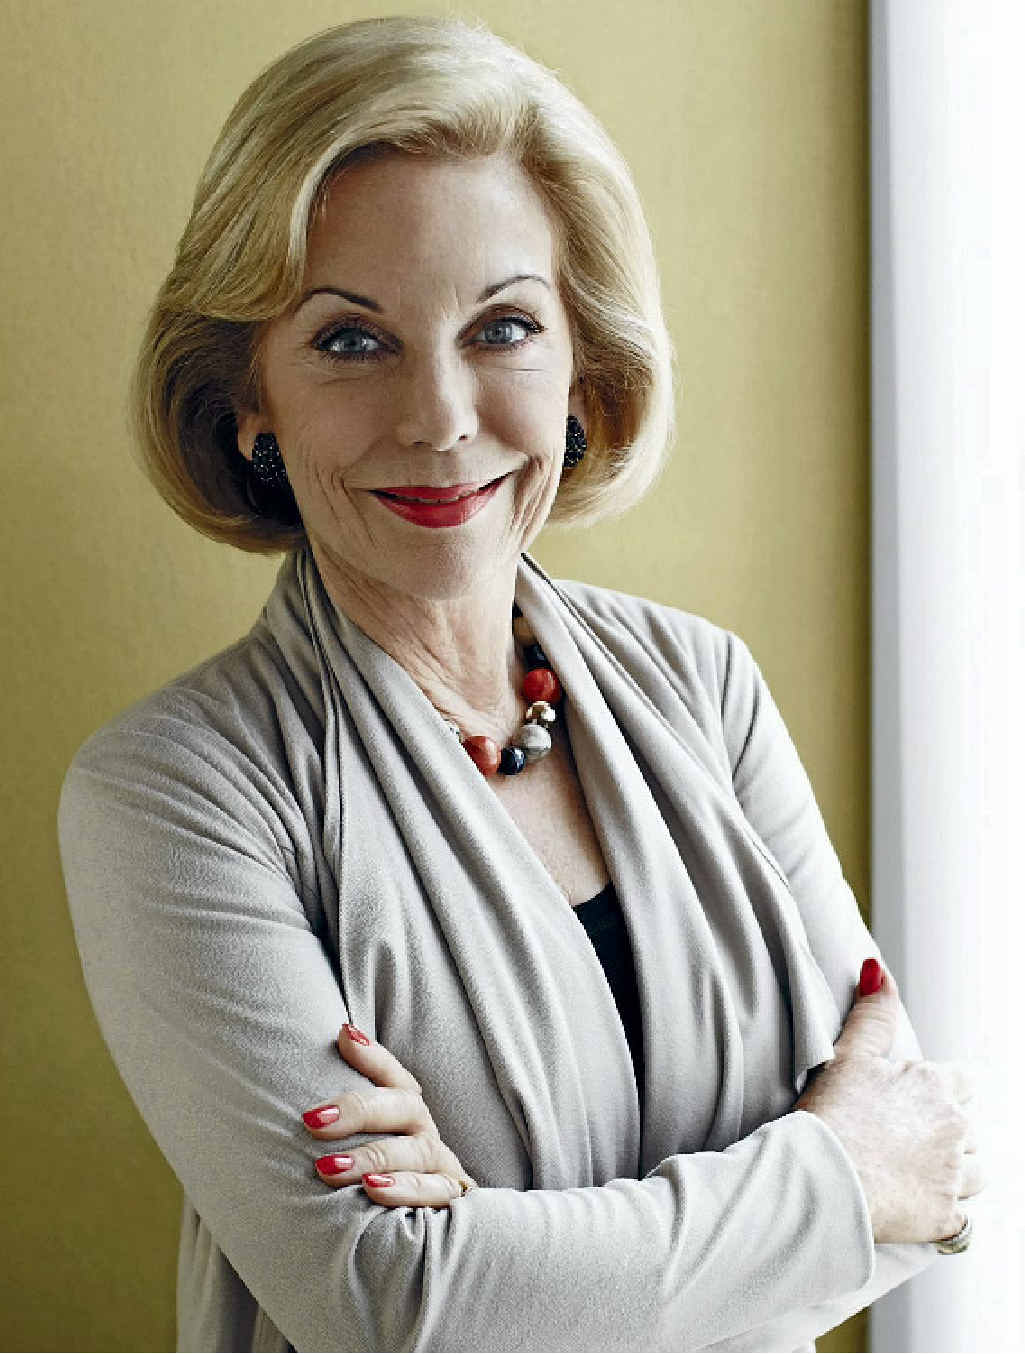 Ita Buttrose will be the guest speaker at the Lismore event.